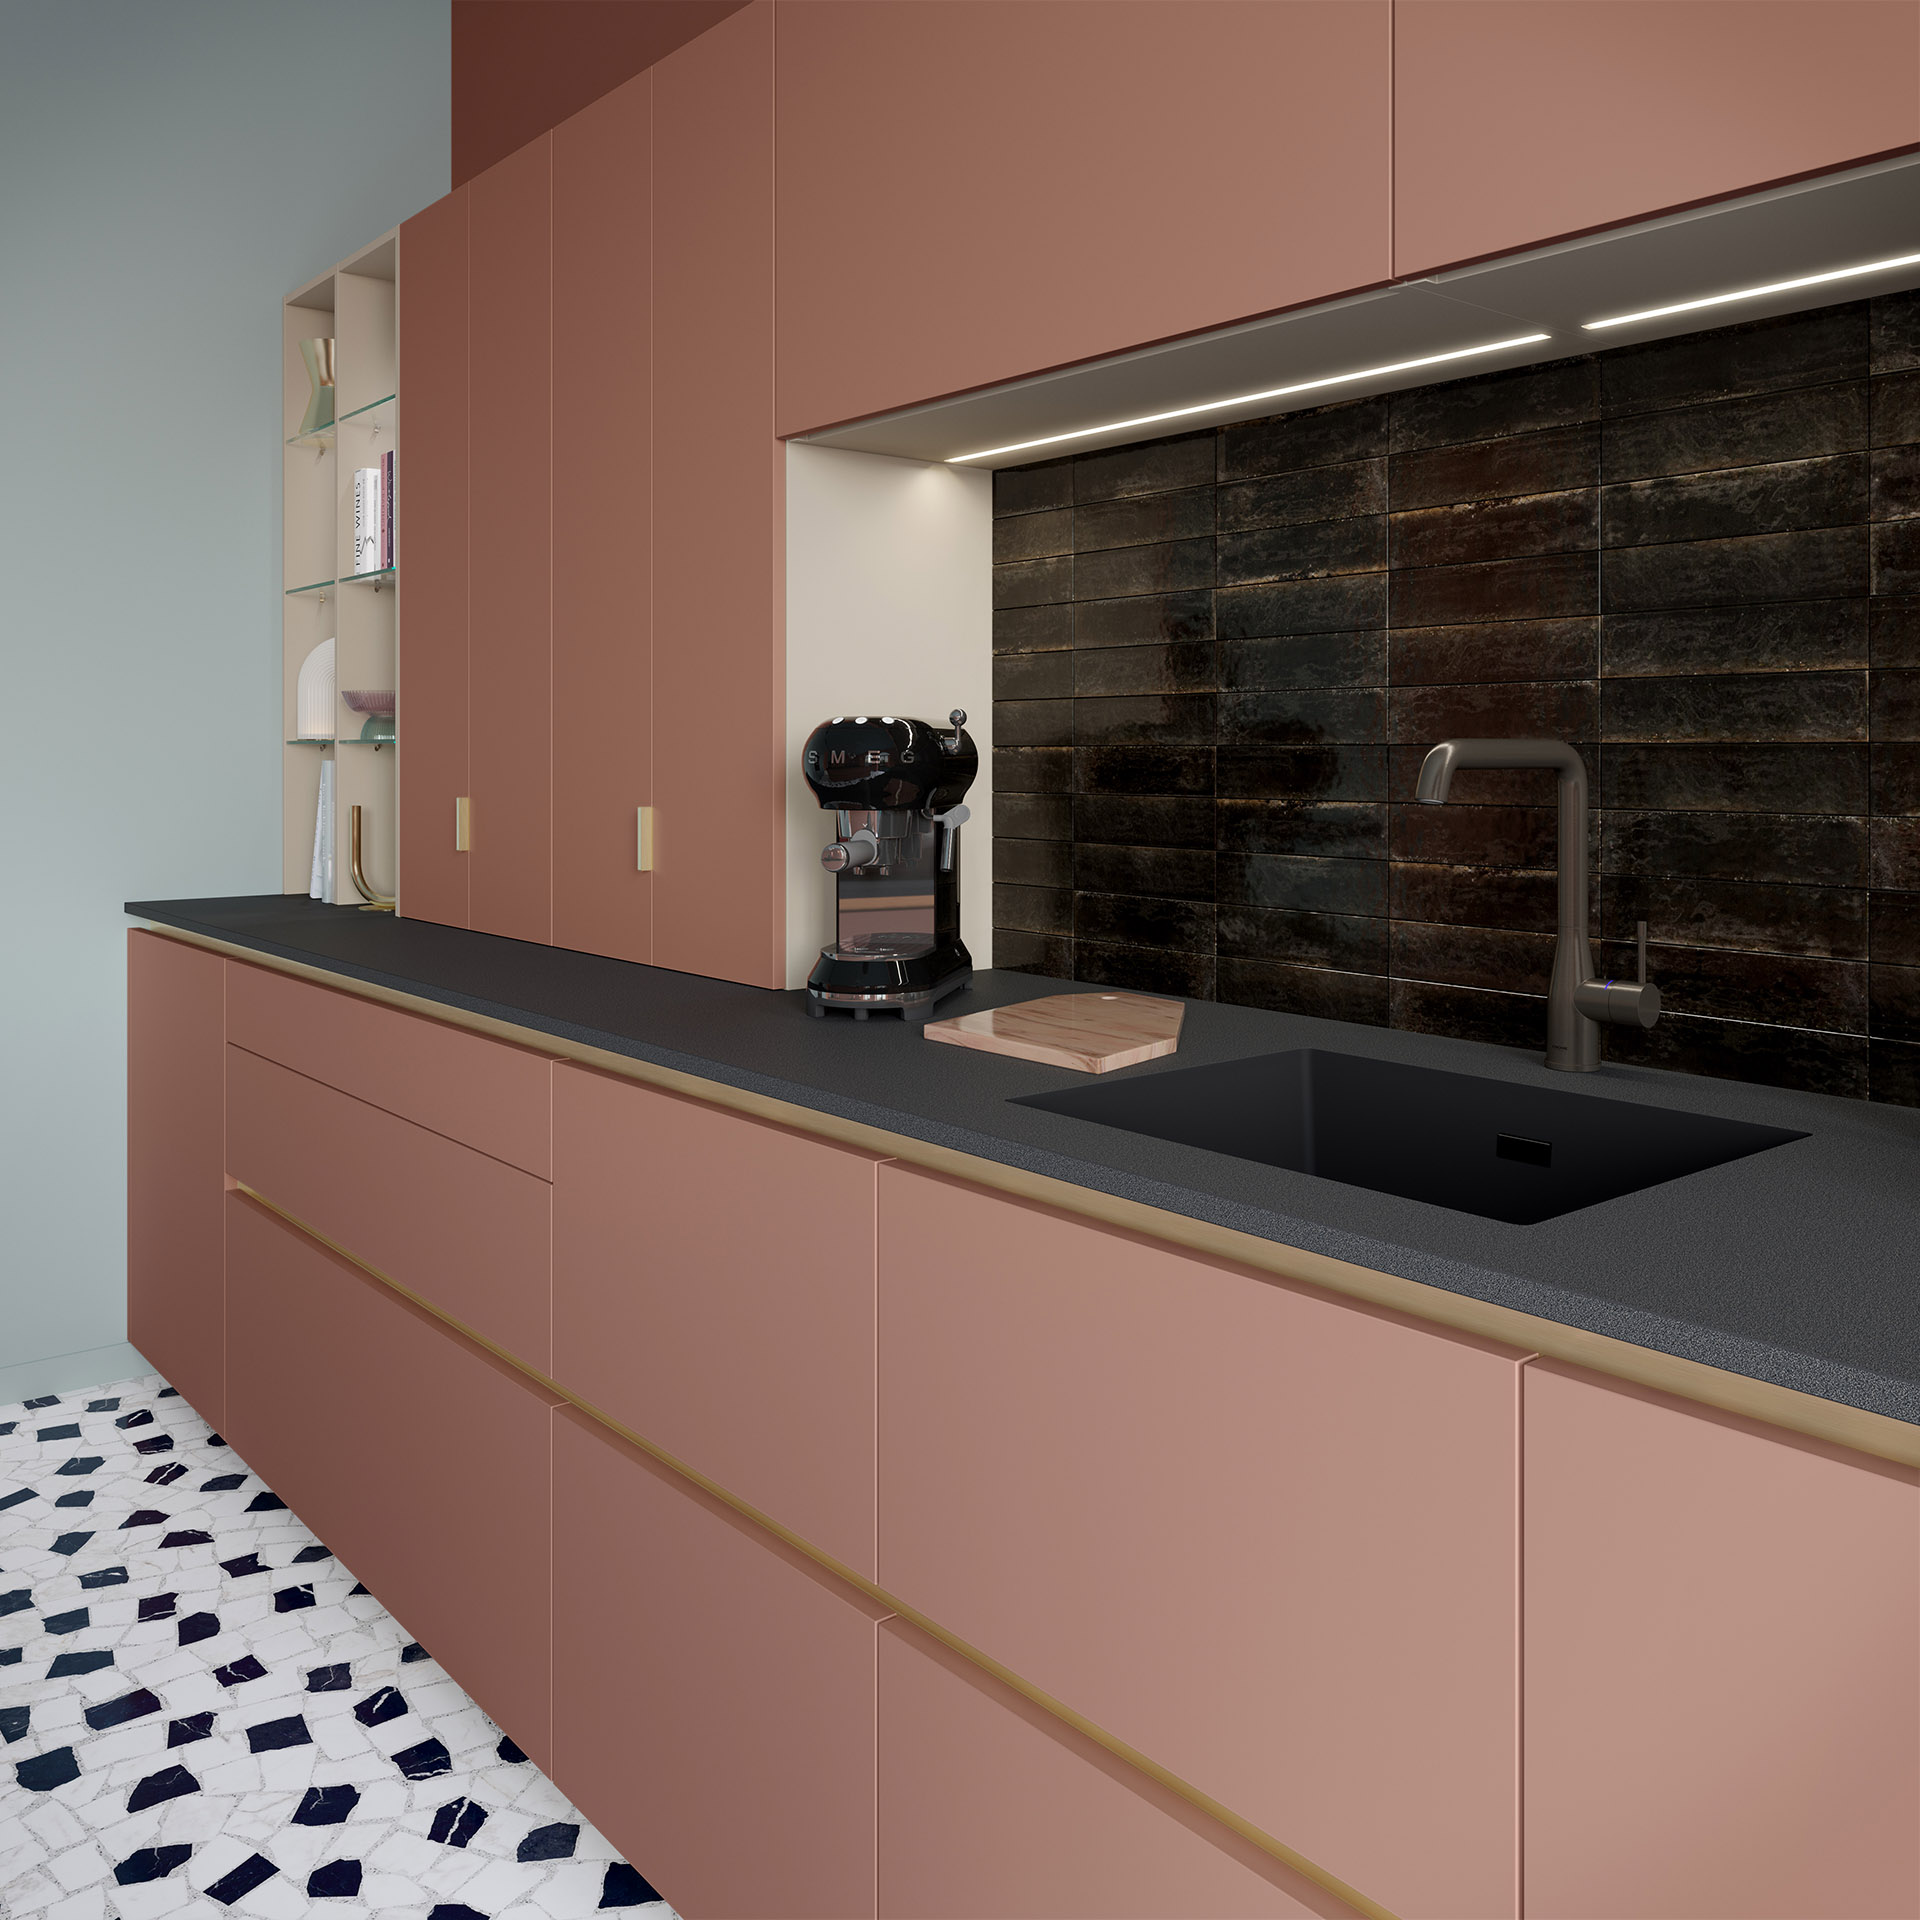 3D creation of the sink and storage area of a modern kitchen